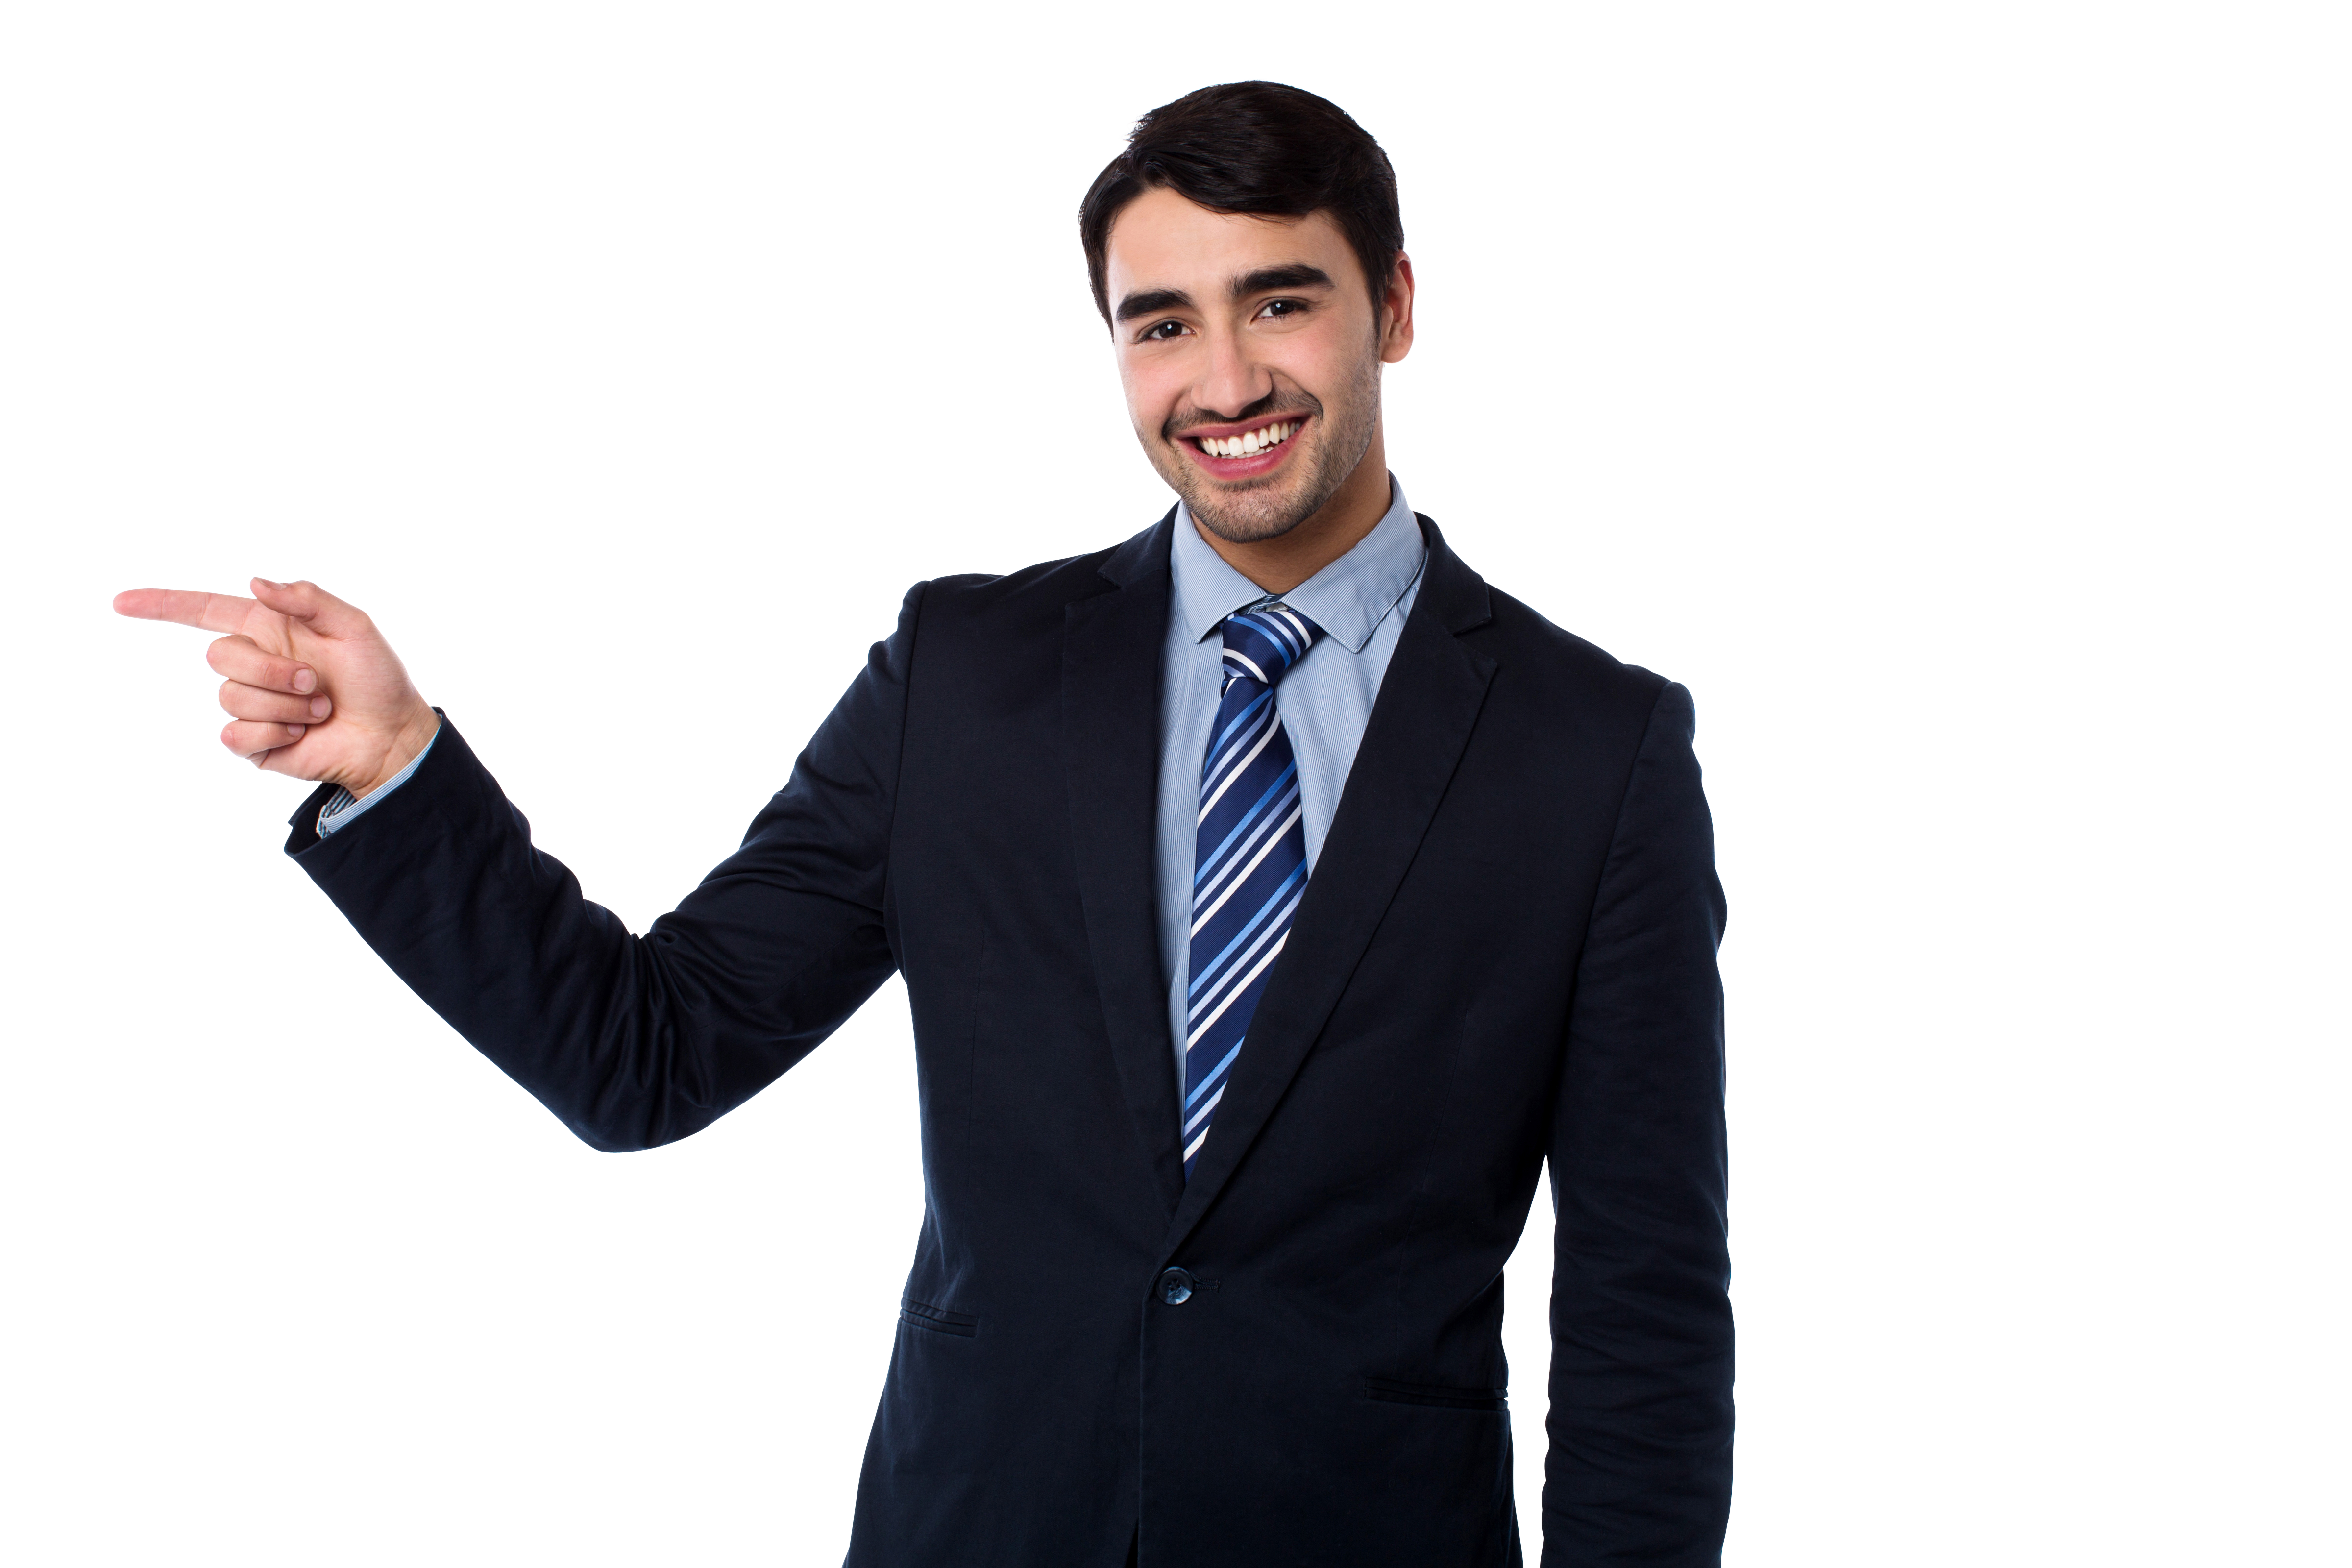 Business People Best PNG Images